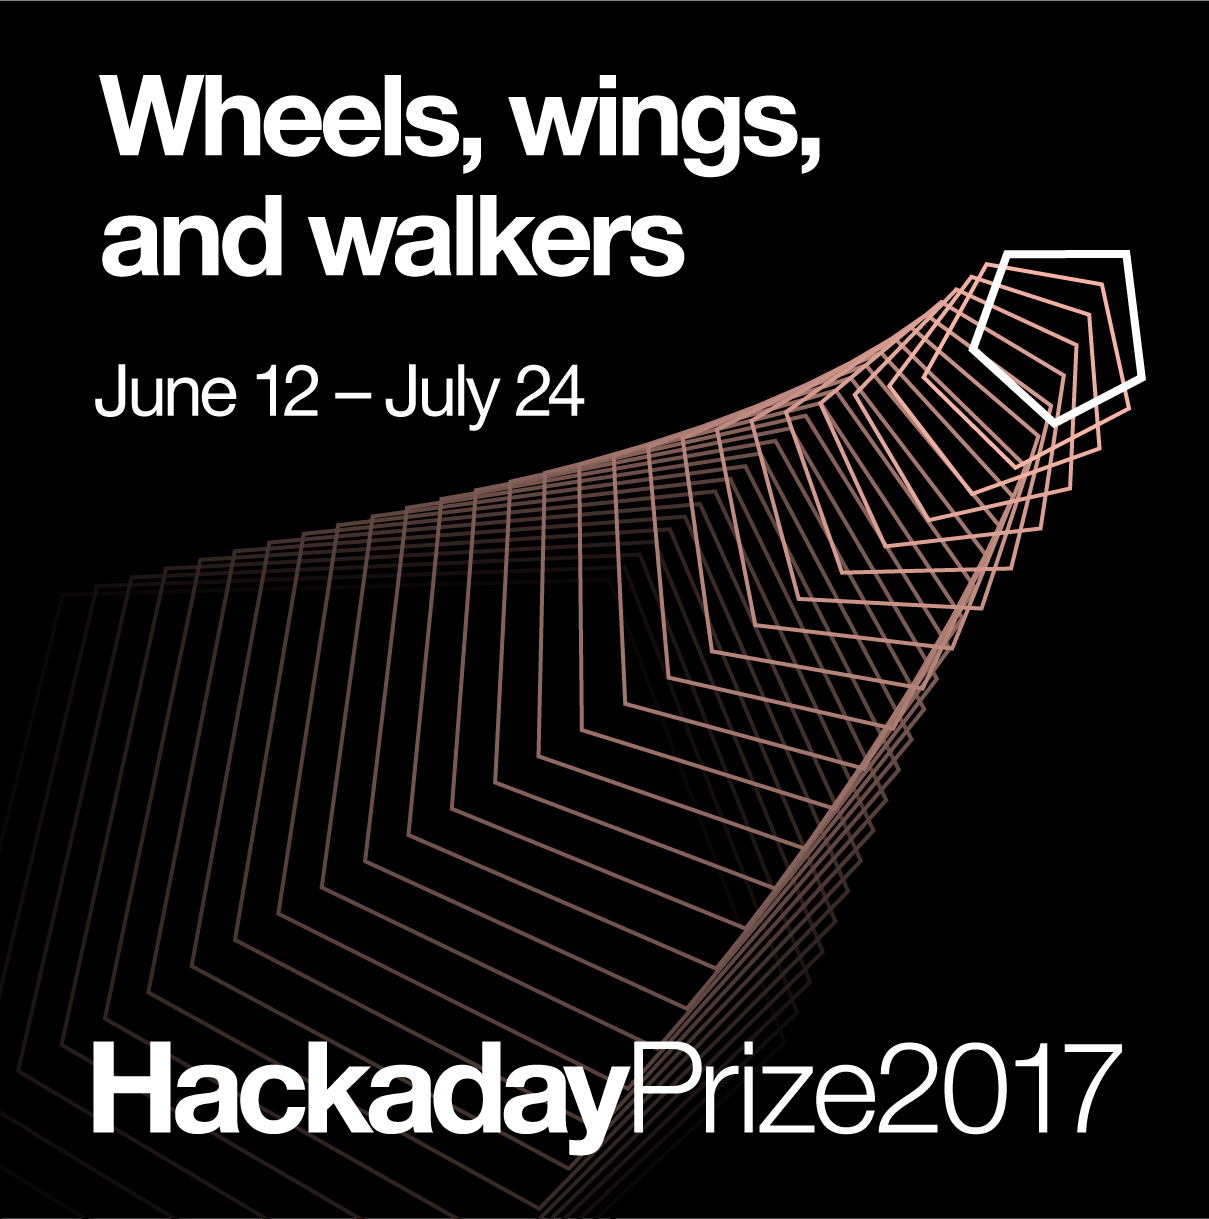 Hackaday Prize 2017